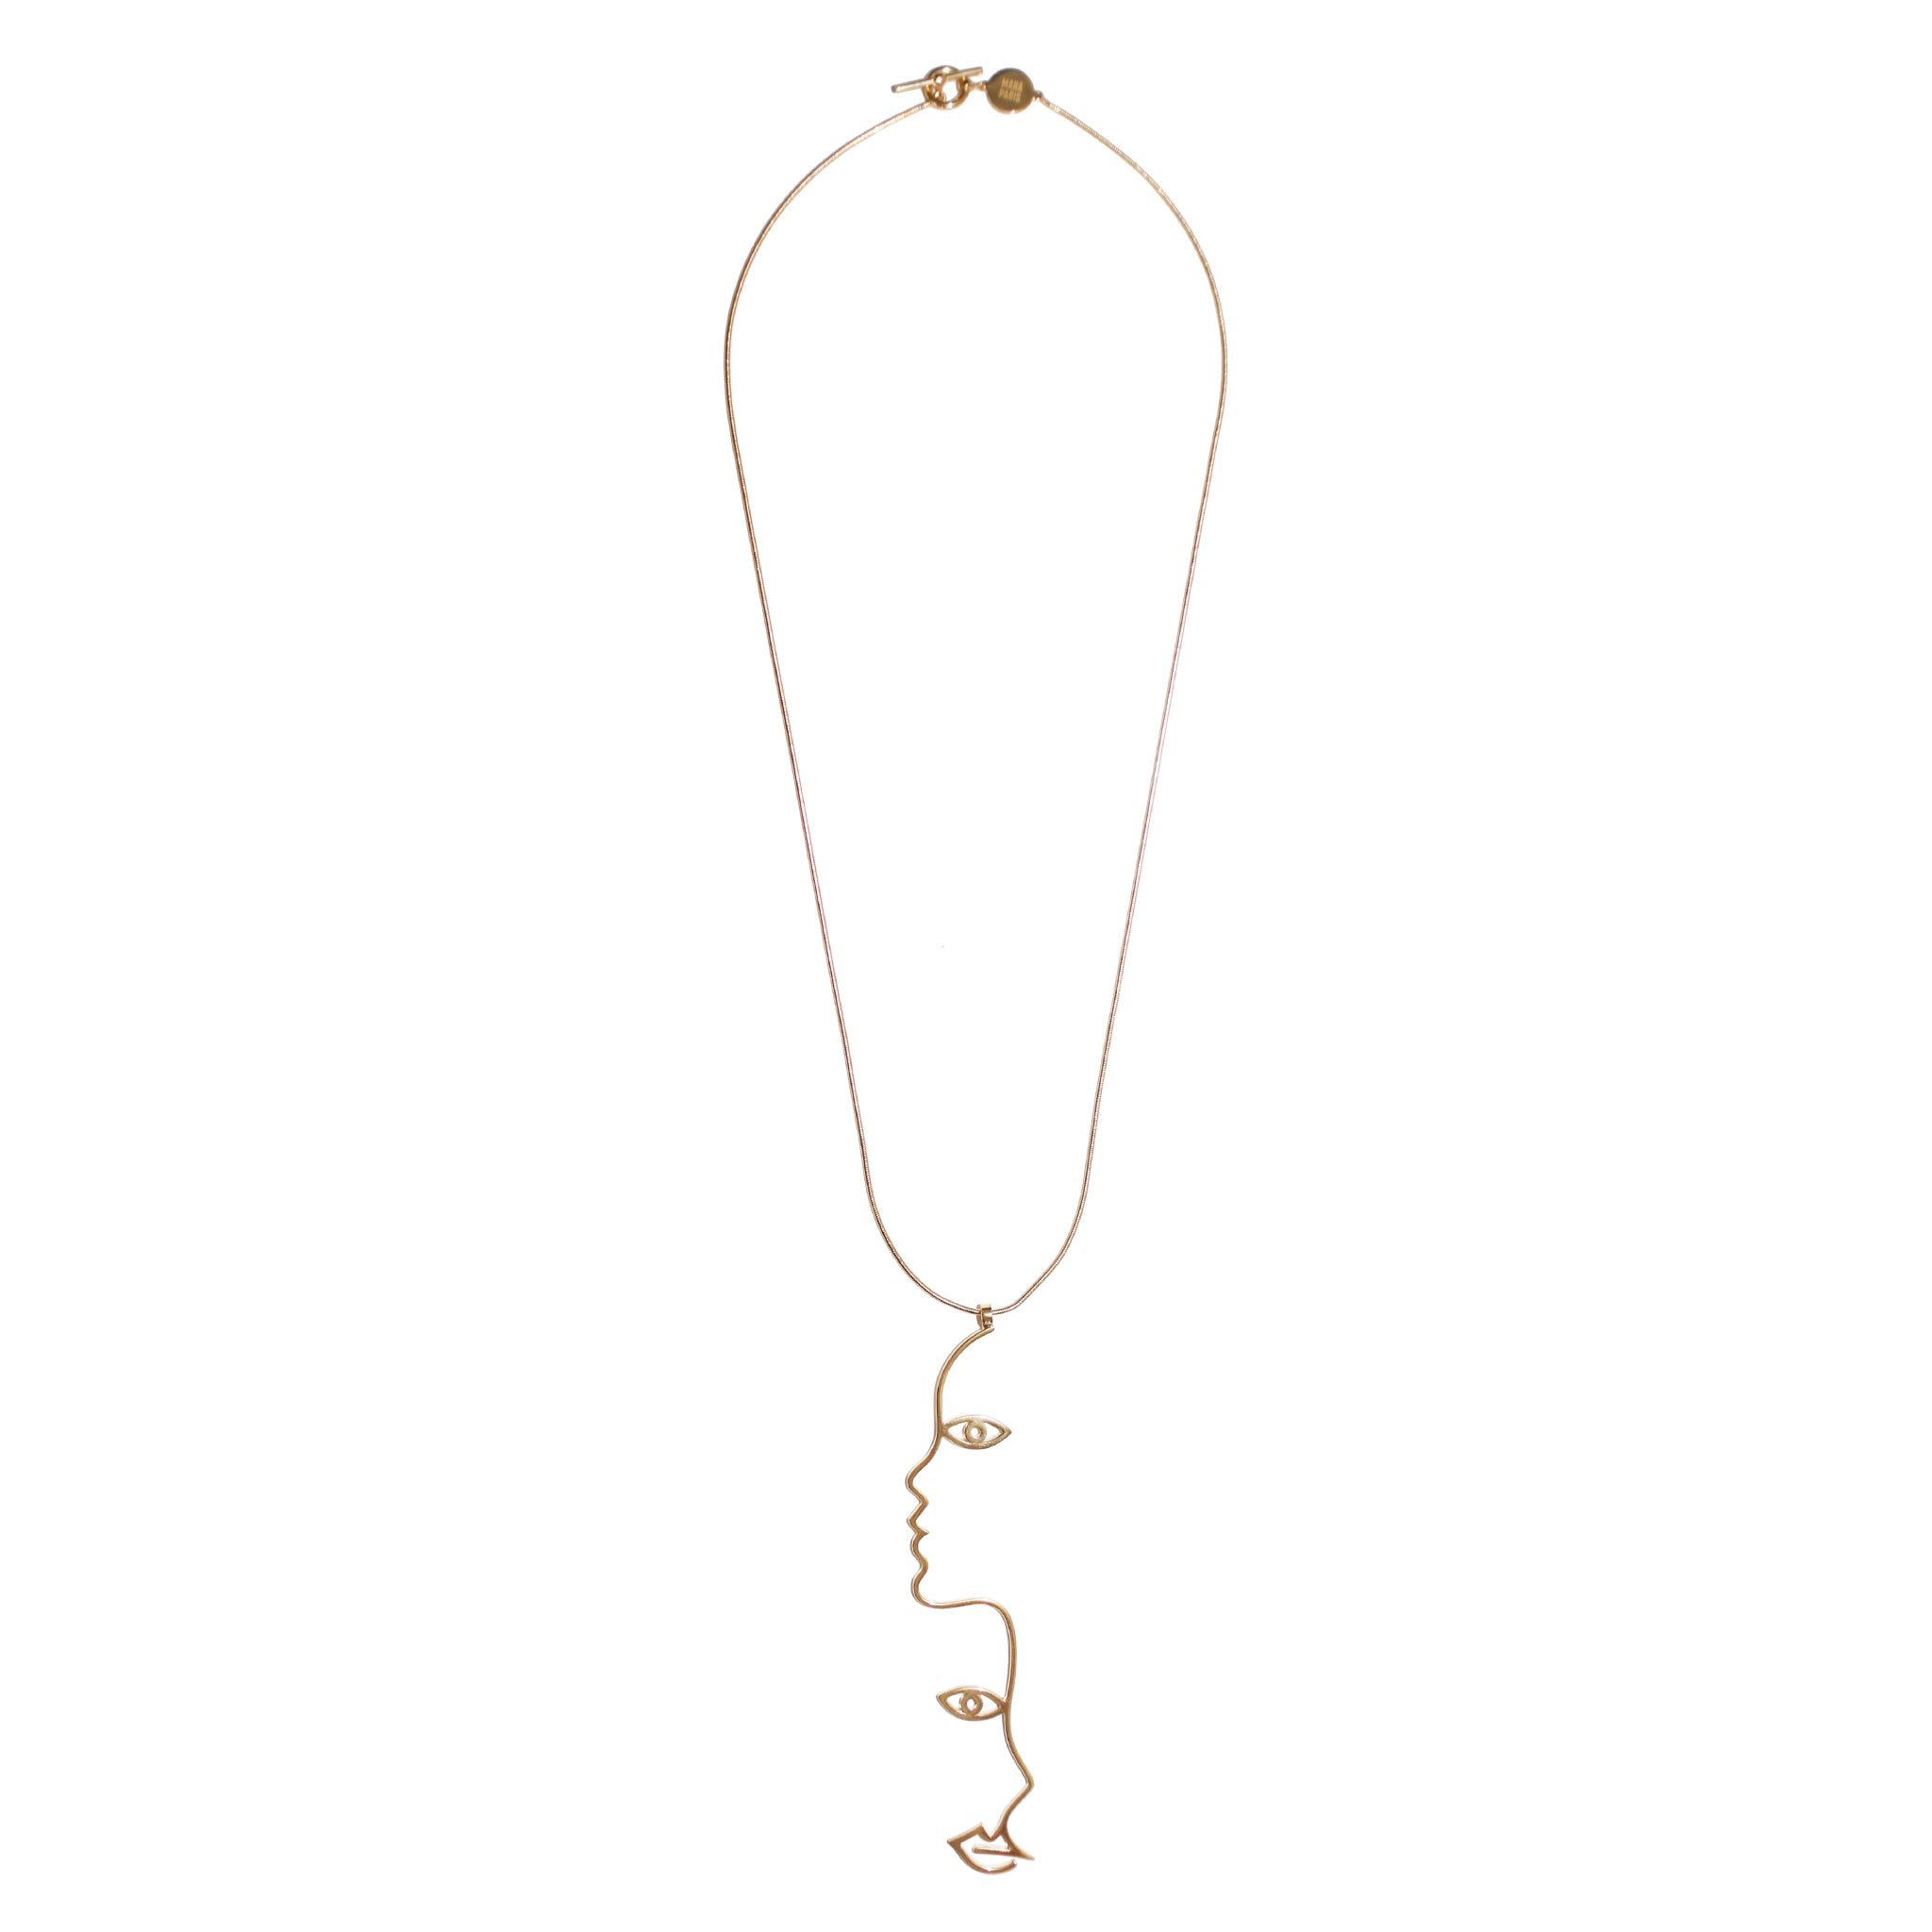 Mara Paris Two Face Necklace Vermeil